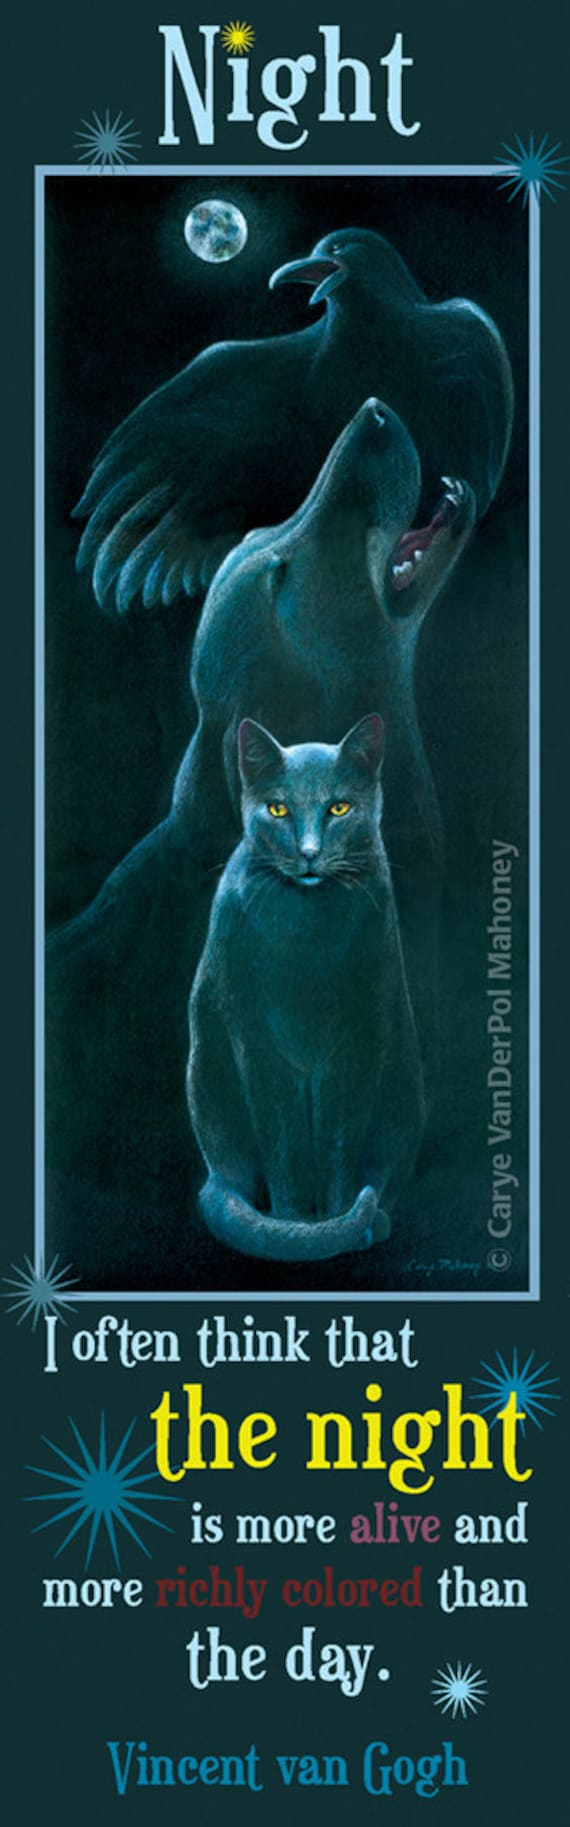 """Bookmark - Black cat, dog, and raven under a full moon with a van Gogh quote about the night - """"Familiars"""" - GREAT gift for a reader"""